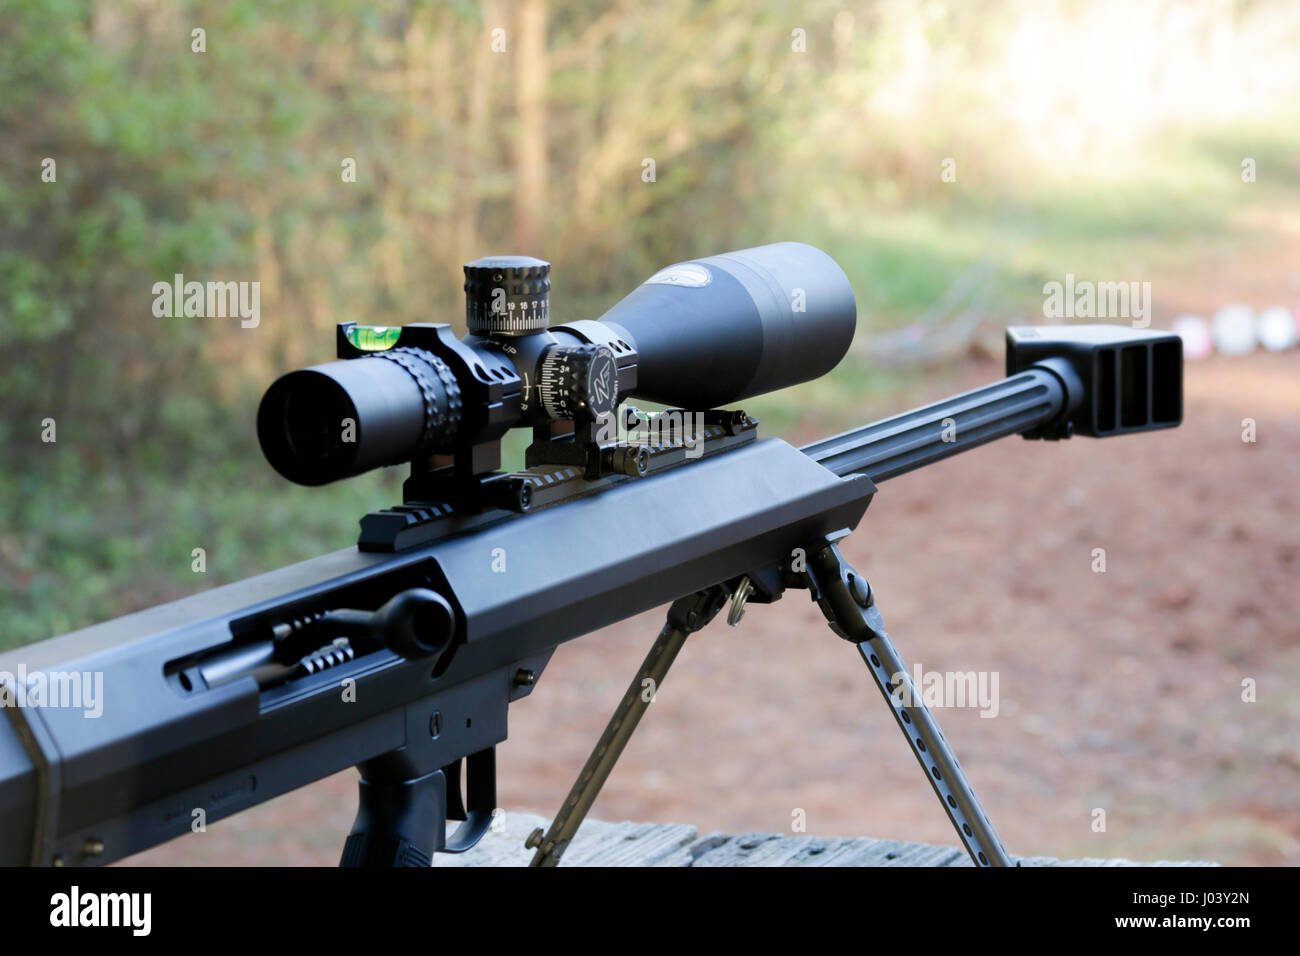 barrett model 99 50 caliber bolt action rifle with scope at leeds